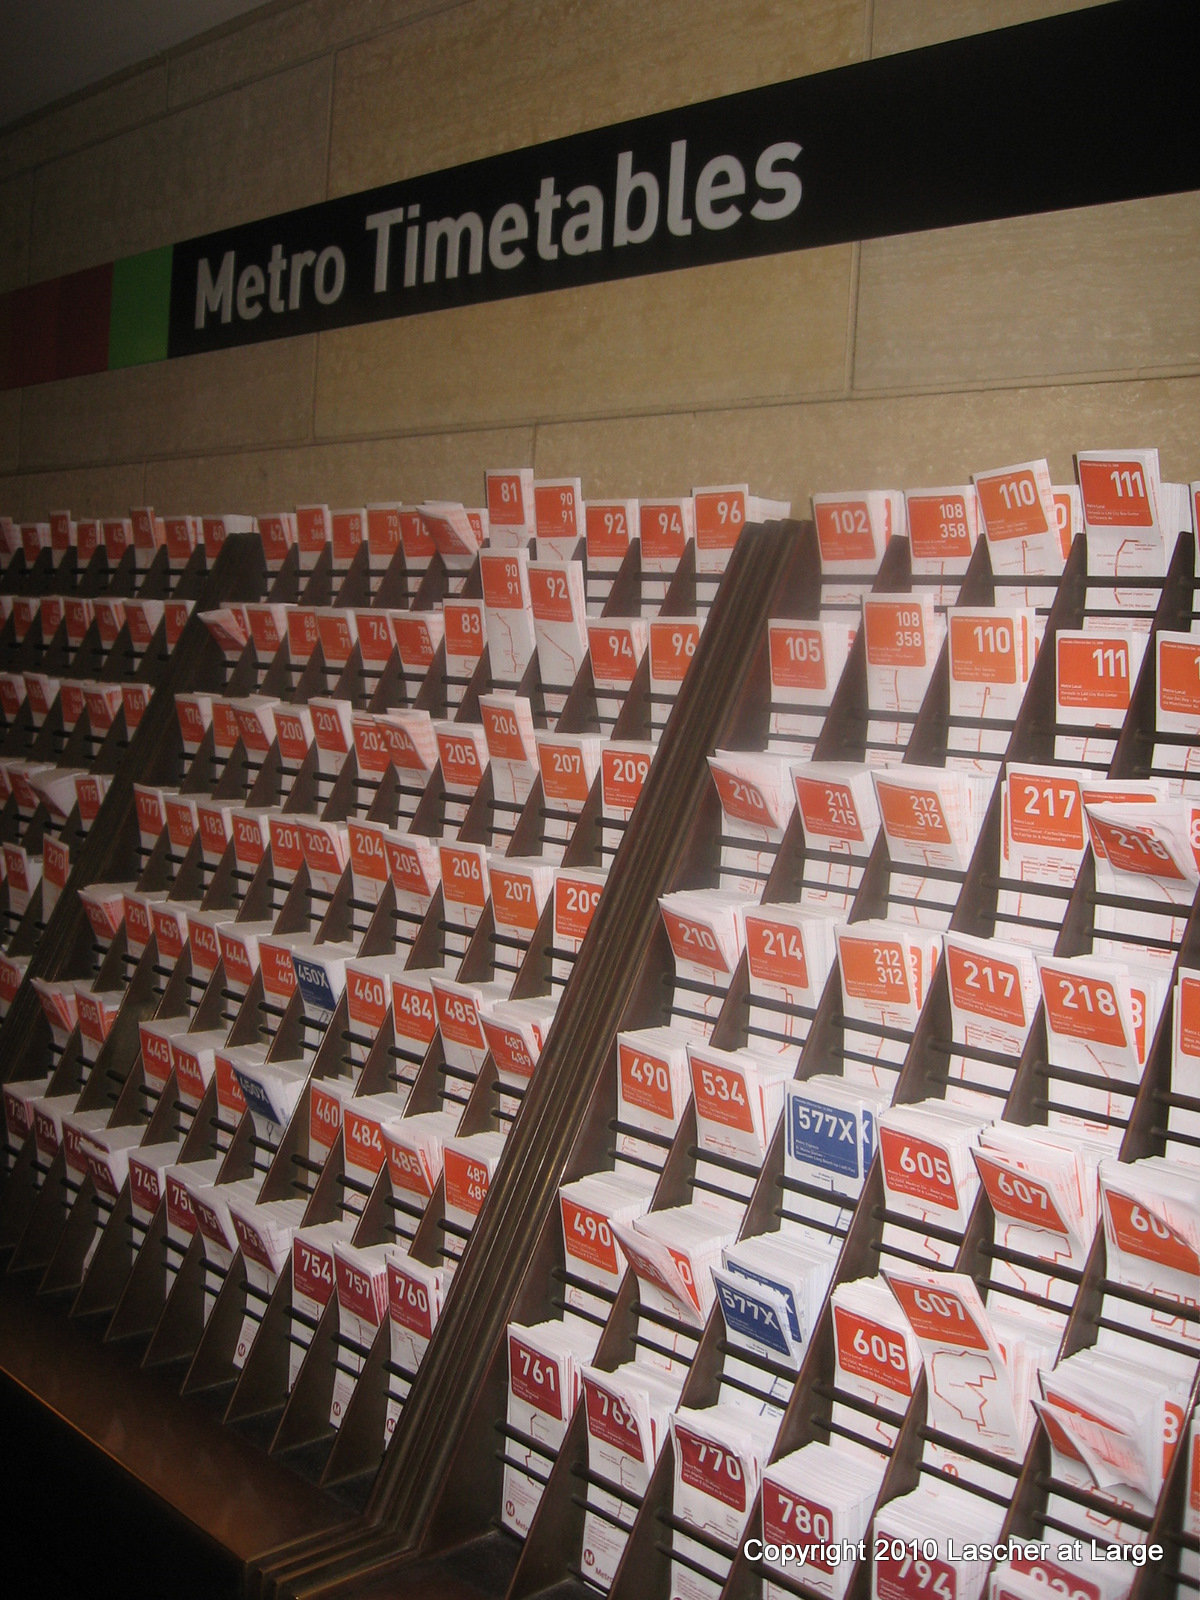 Metro timetables. ( Photo by Bill Lascher )